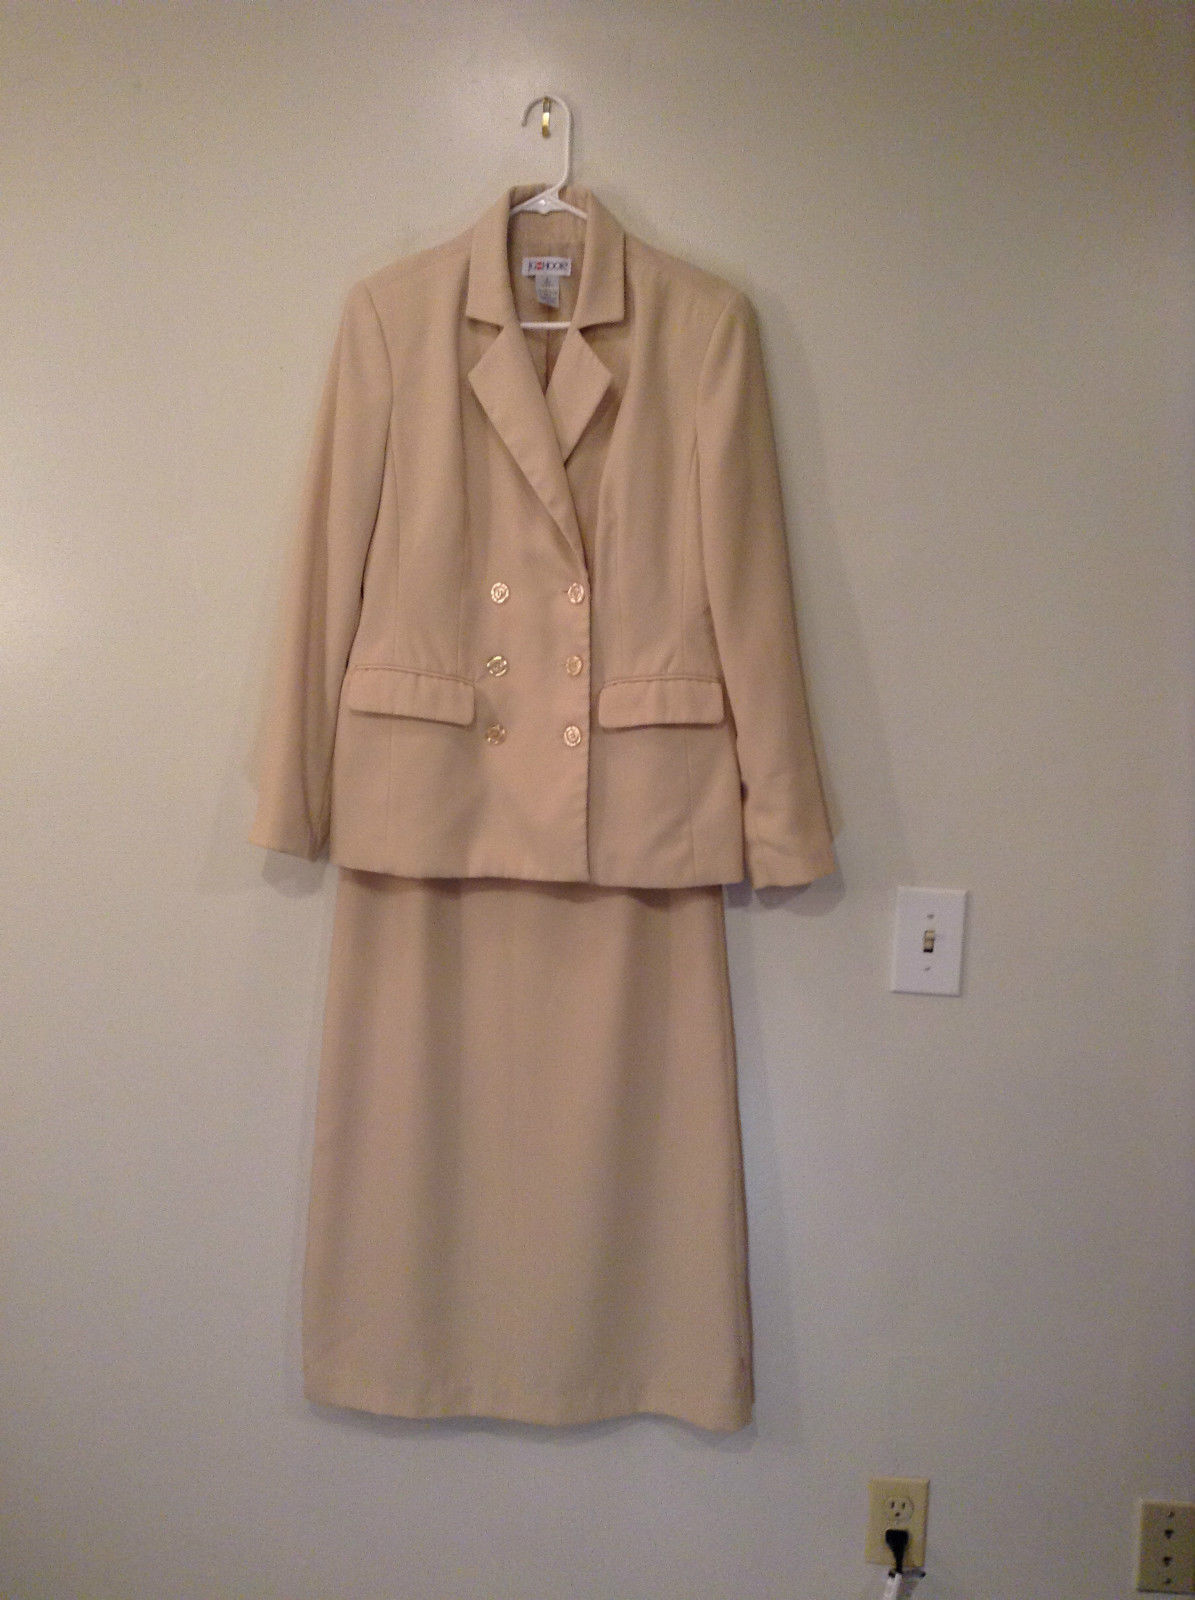 J G Hook Jacket and Skirt Set Size 8 Cream Fully Lined 100 Percent Polyester